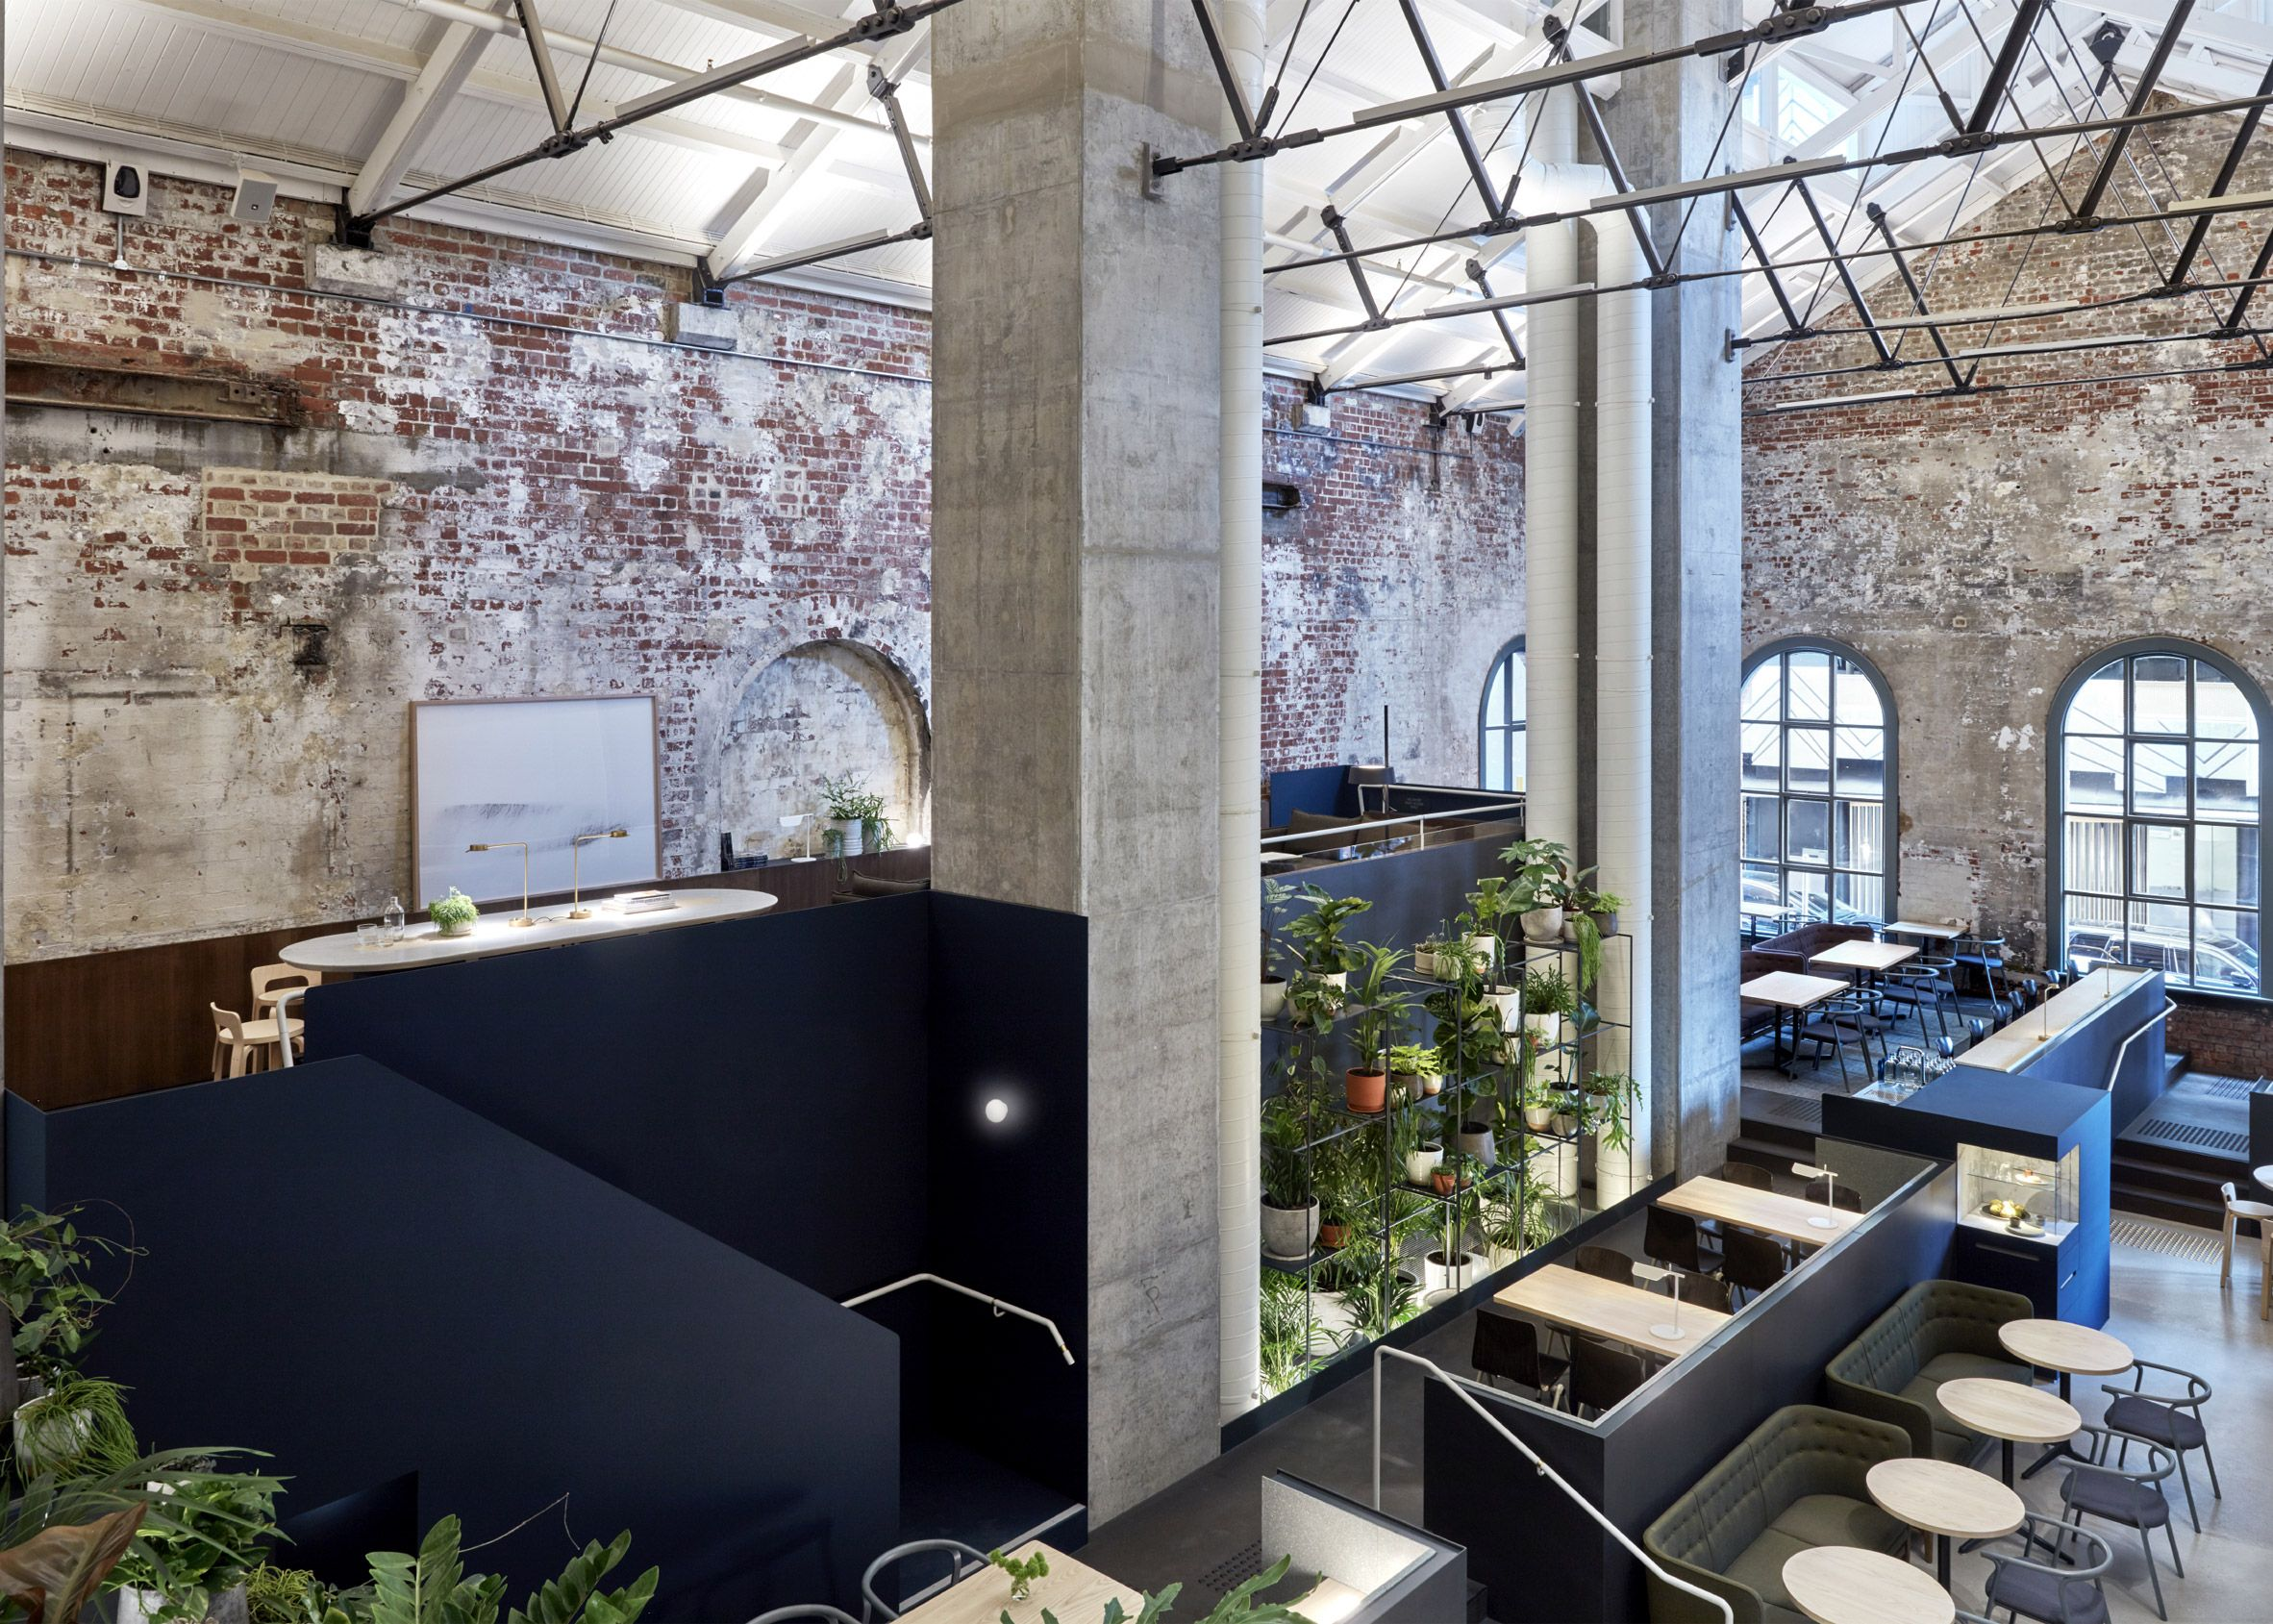 design office converts disused power station into restaurant in